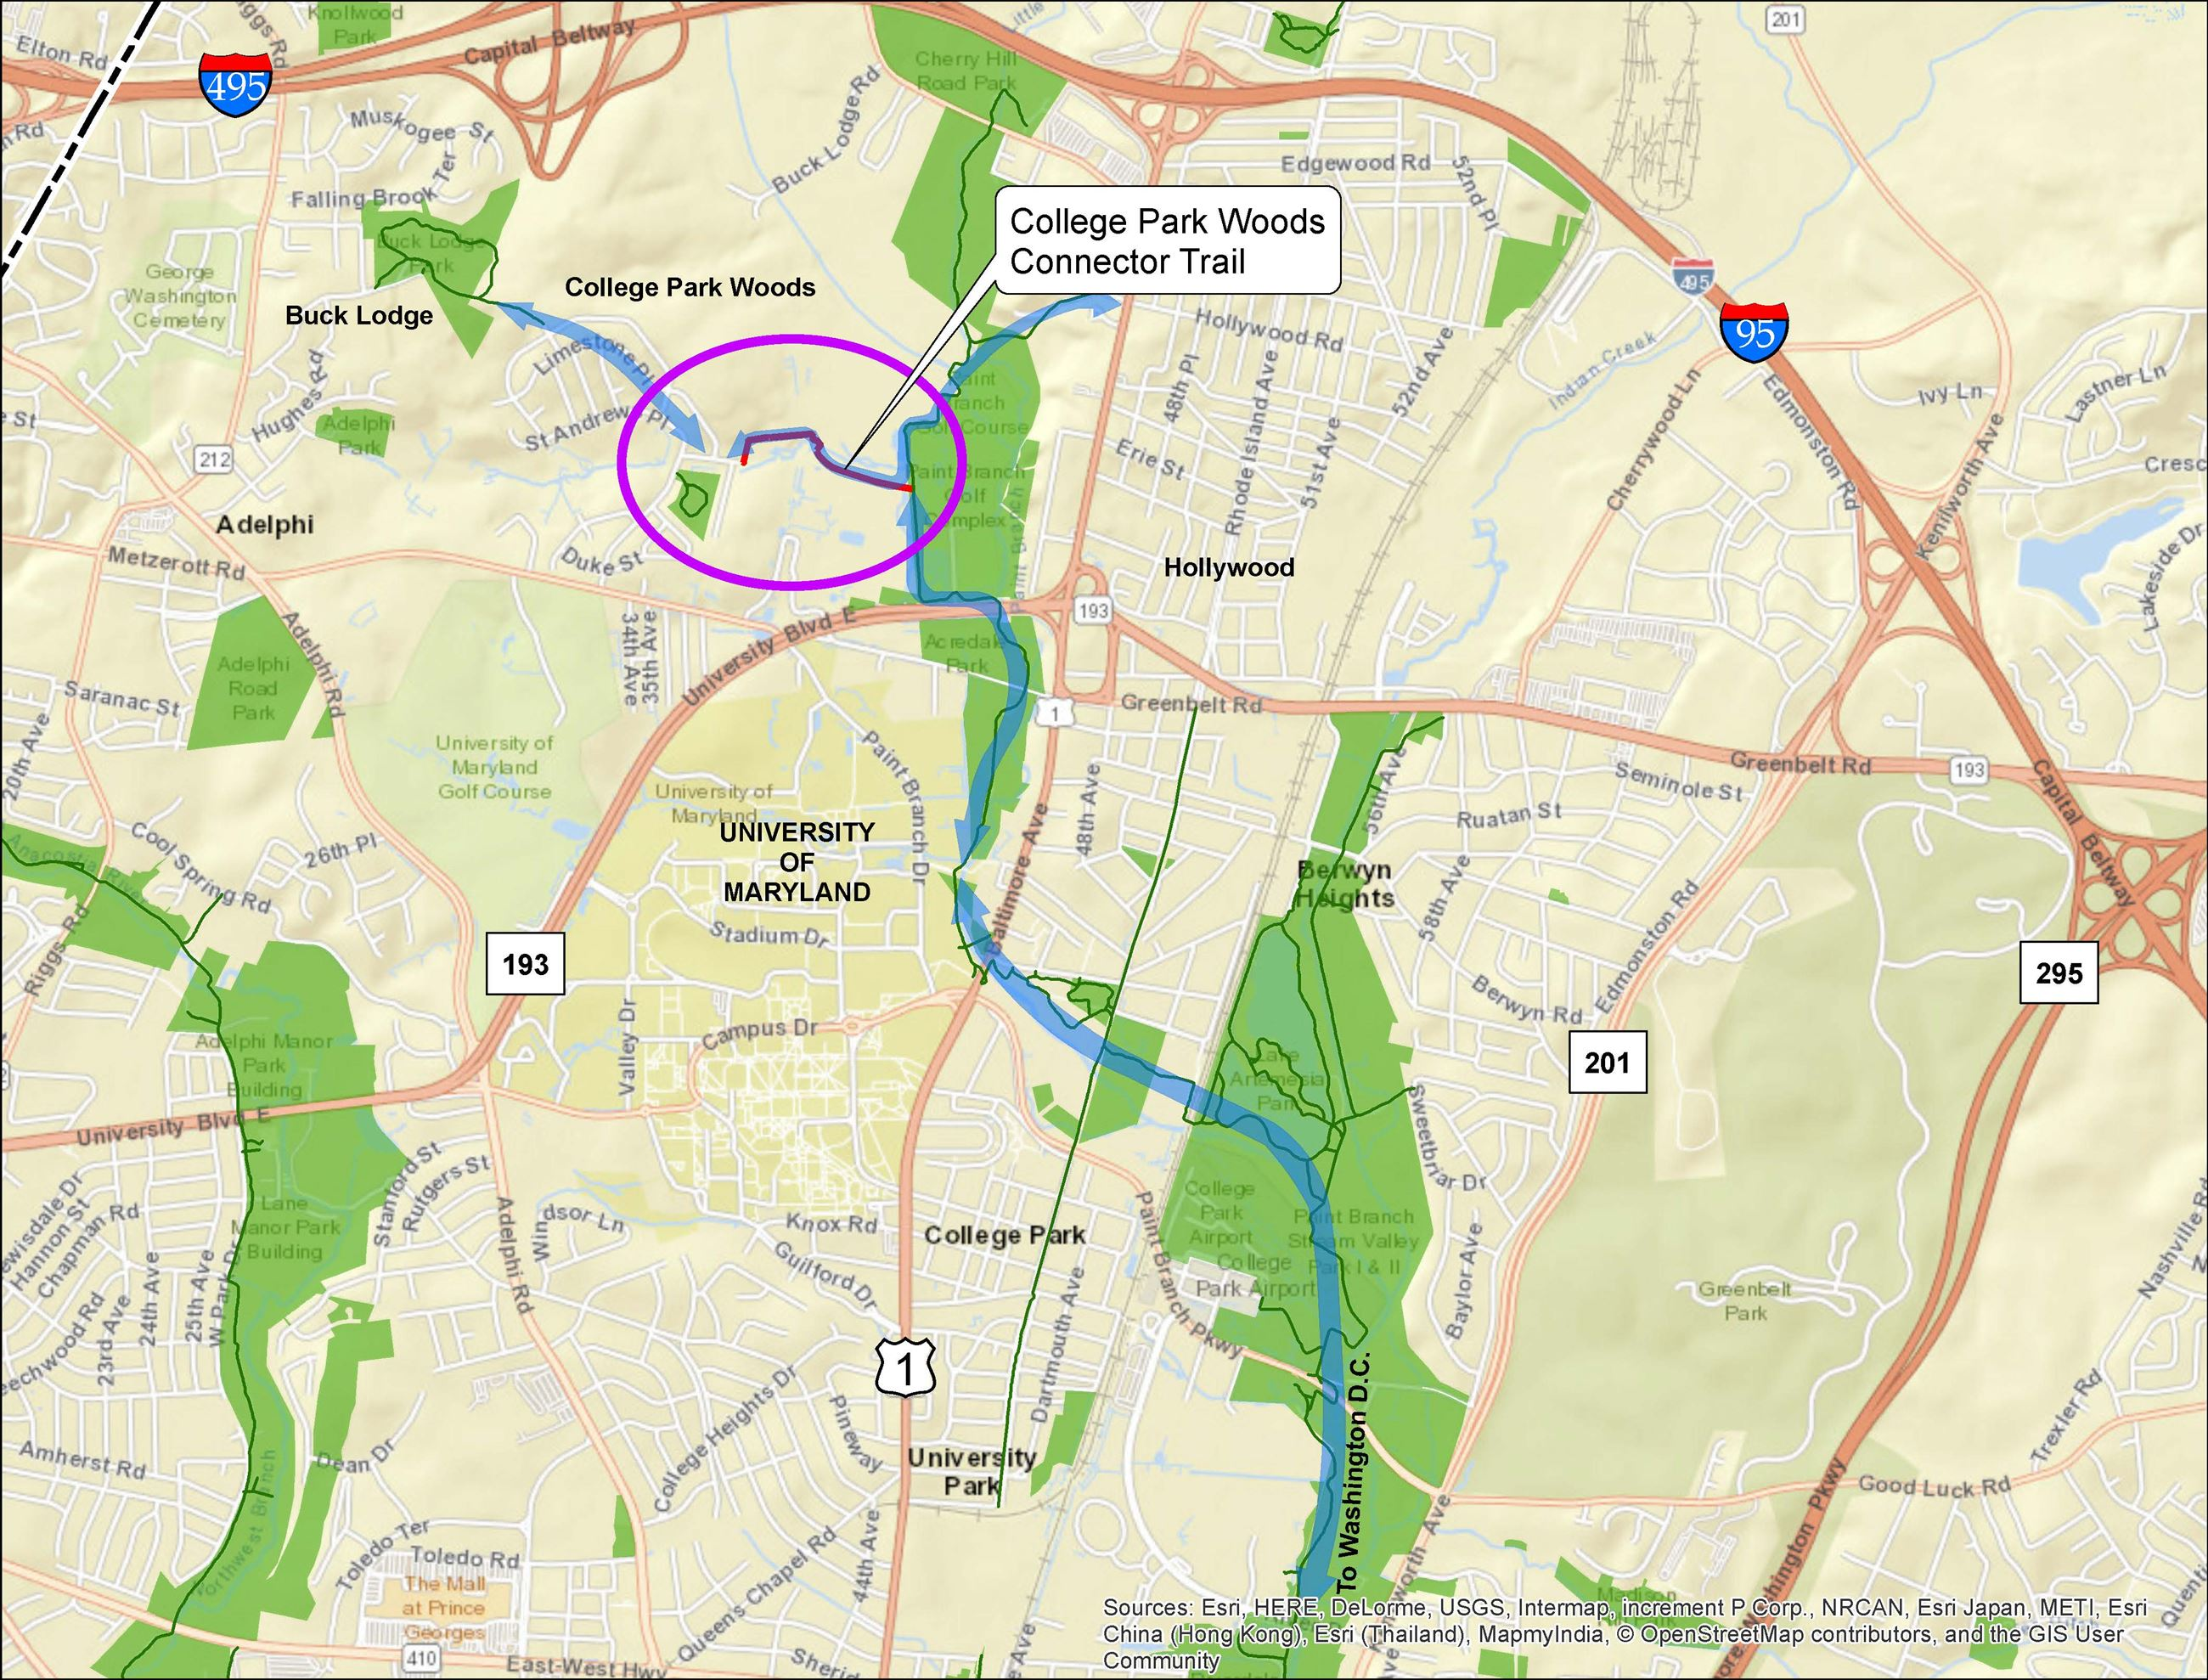 College Park Connector Trail Vicinity Map